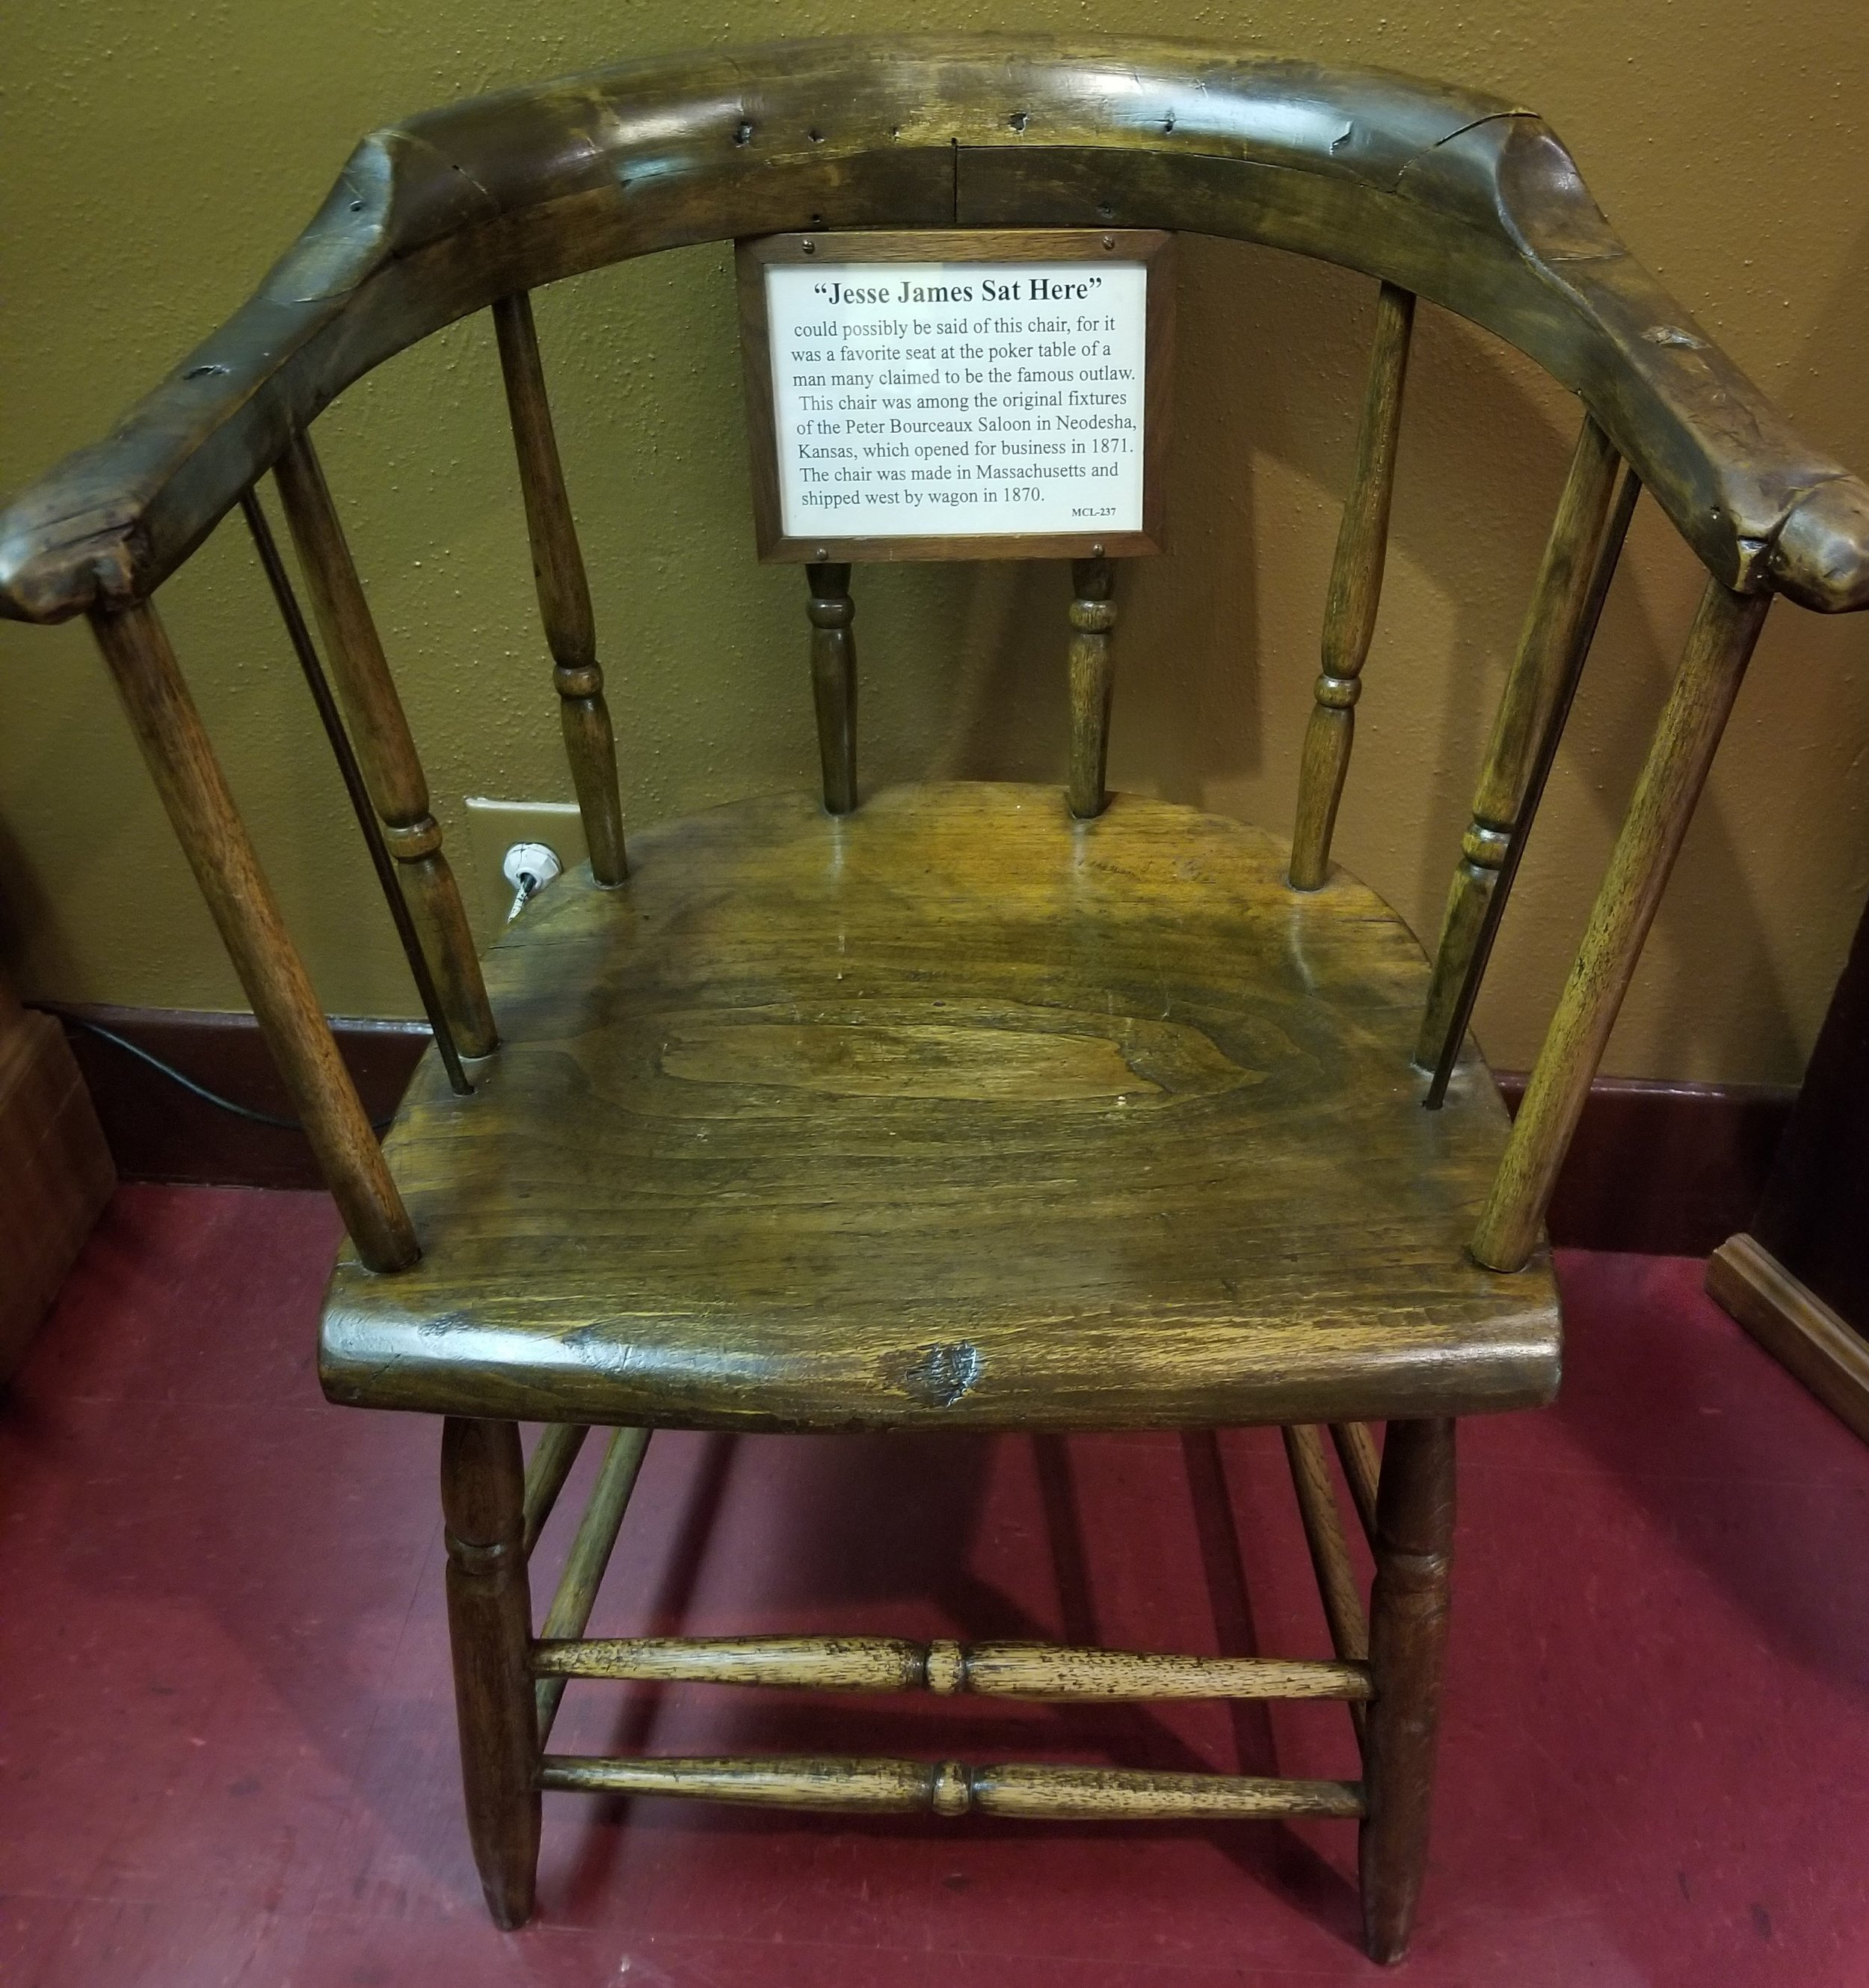 """Jesse James might have sat in this chair as """"it was a favorite seat at the poker table of a man many claimed to be the famous outlaw"""""""